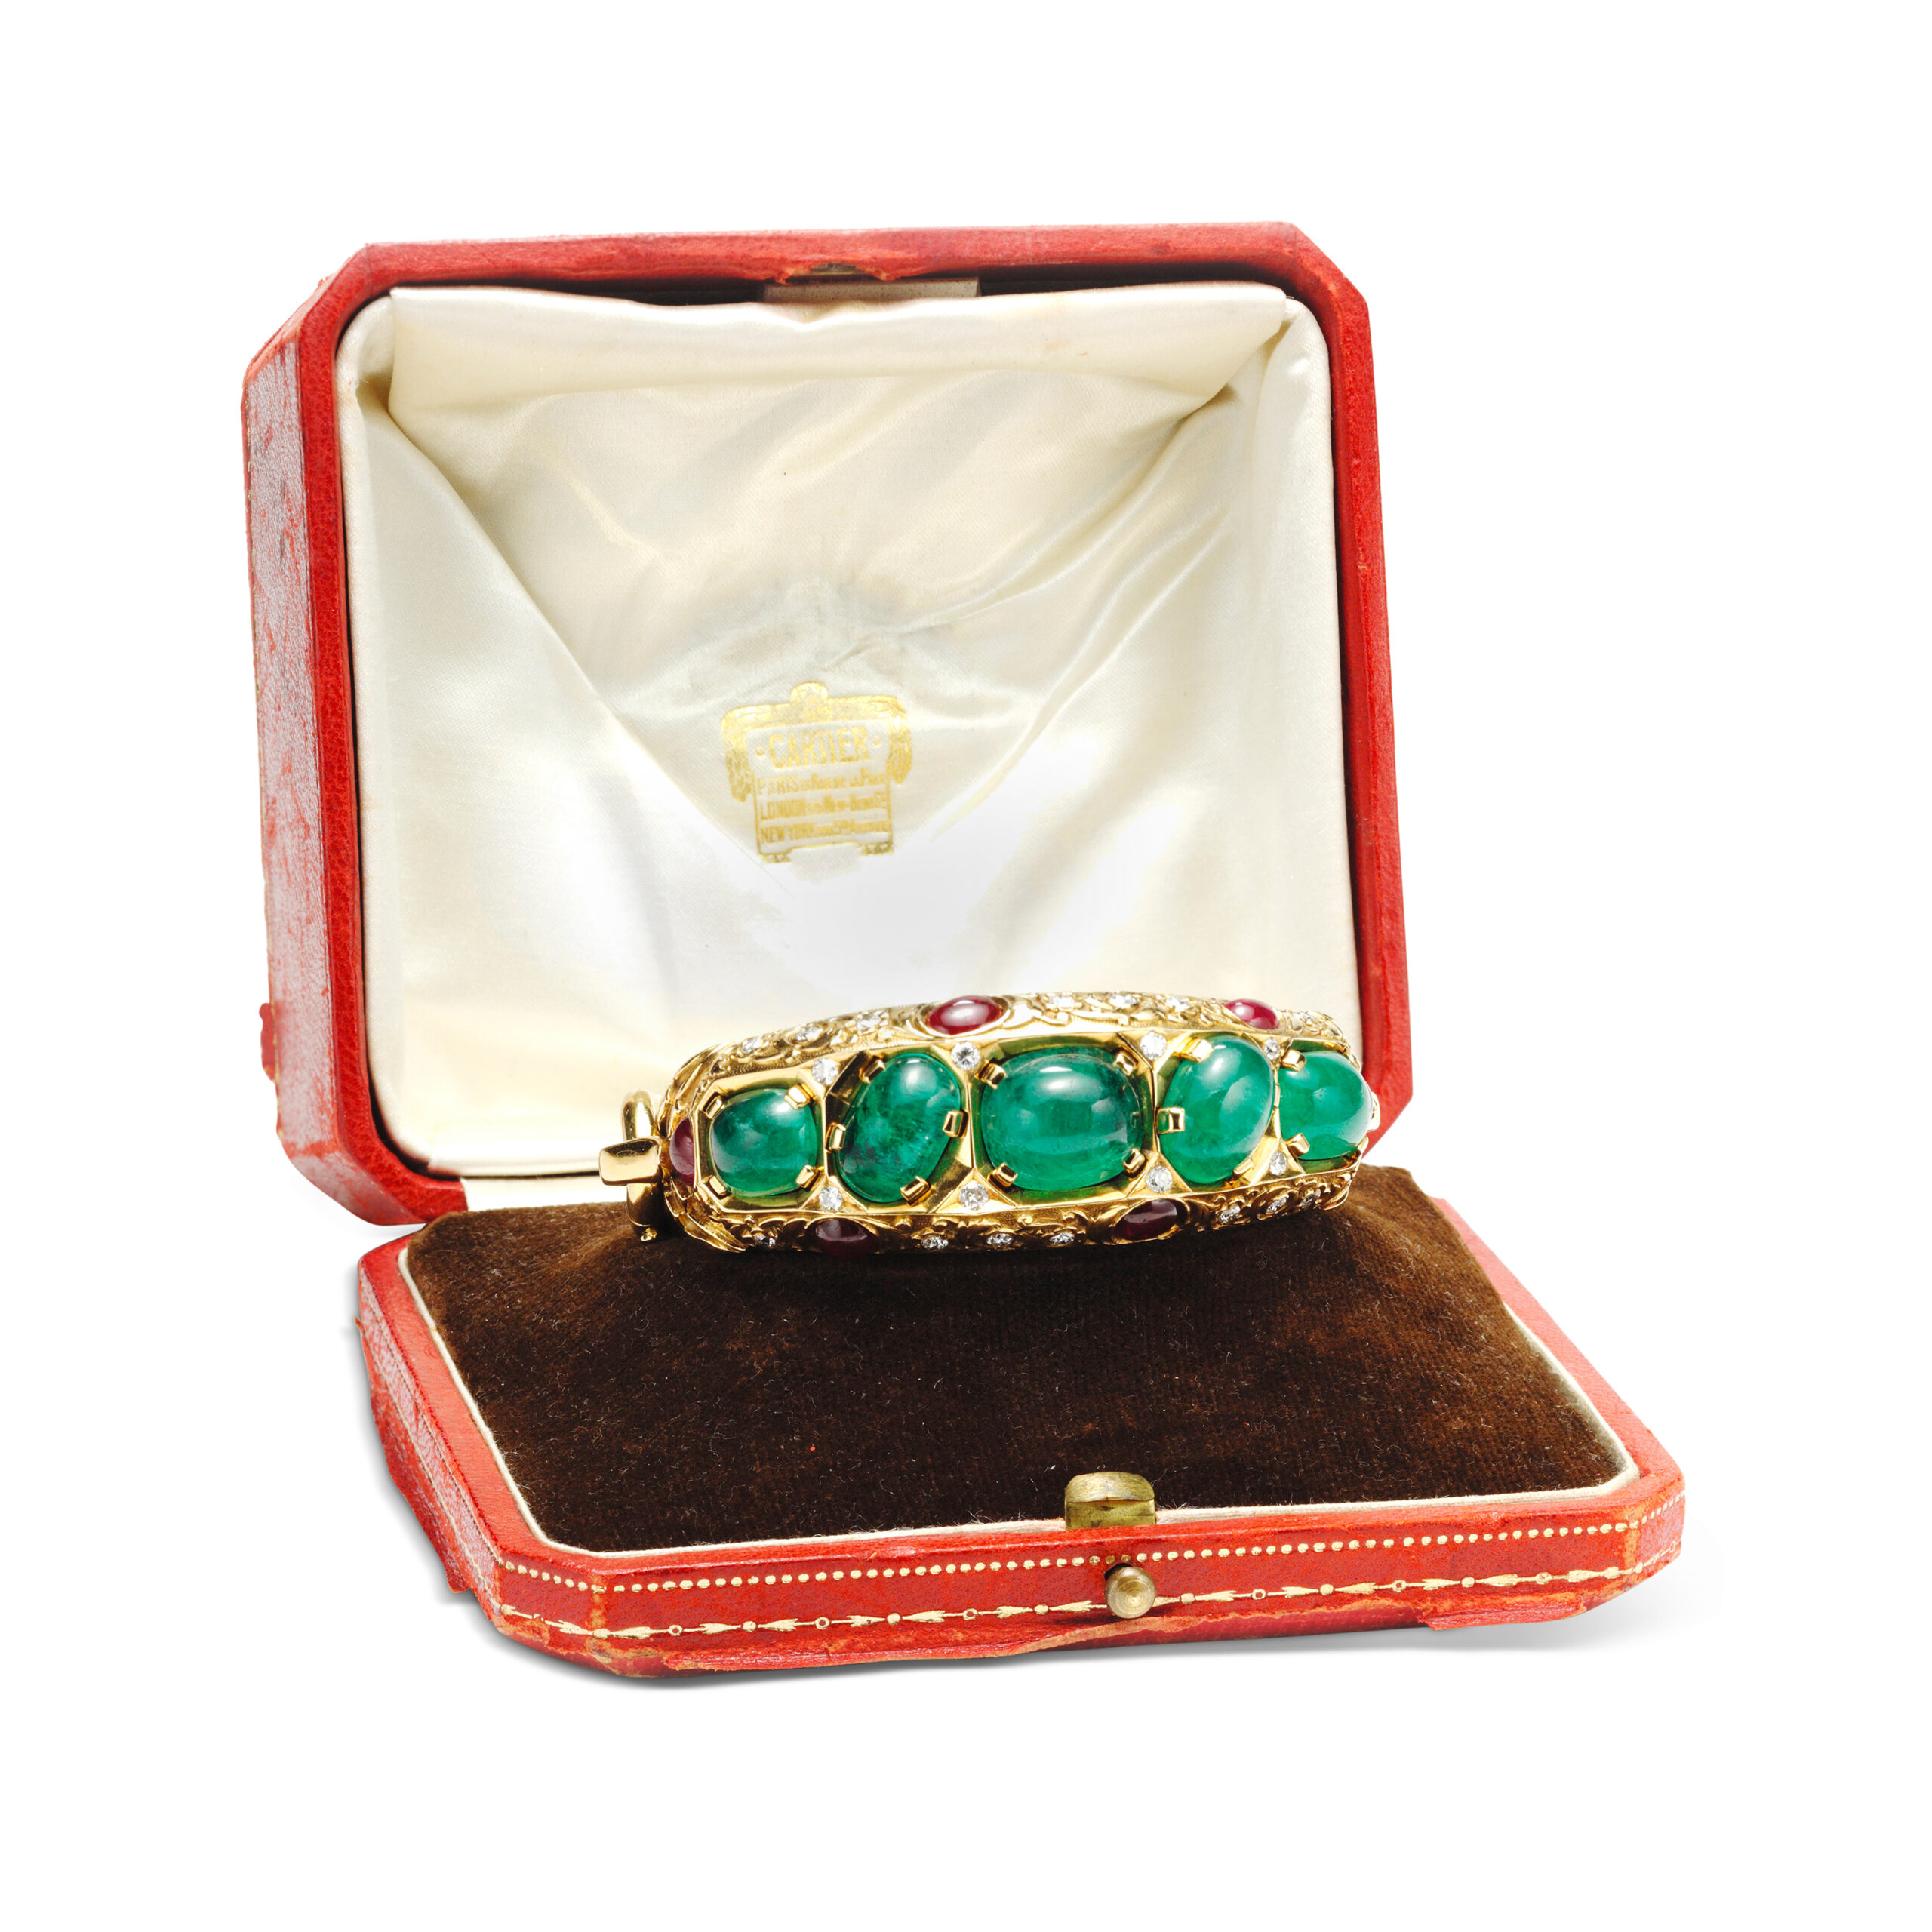 An Emerald, Ruby and Diamond Bangle Bracelet, by Cartier, made in 1945